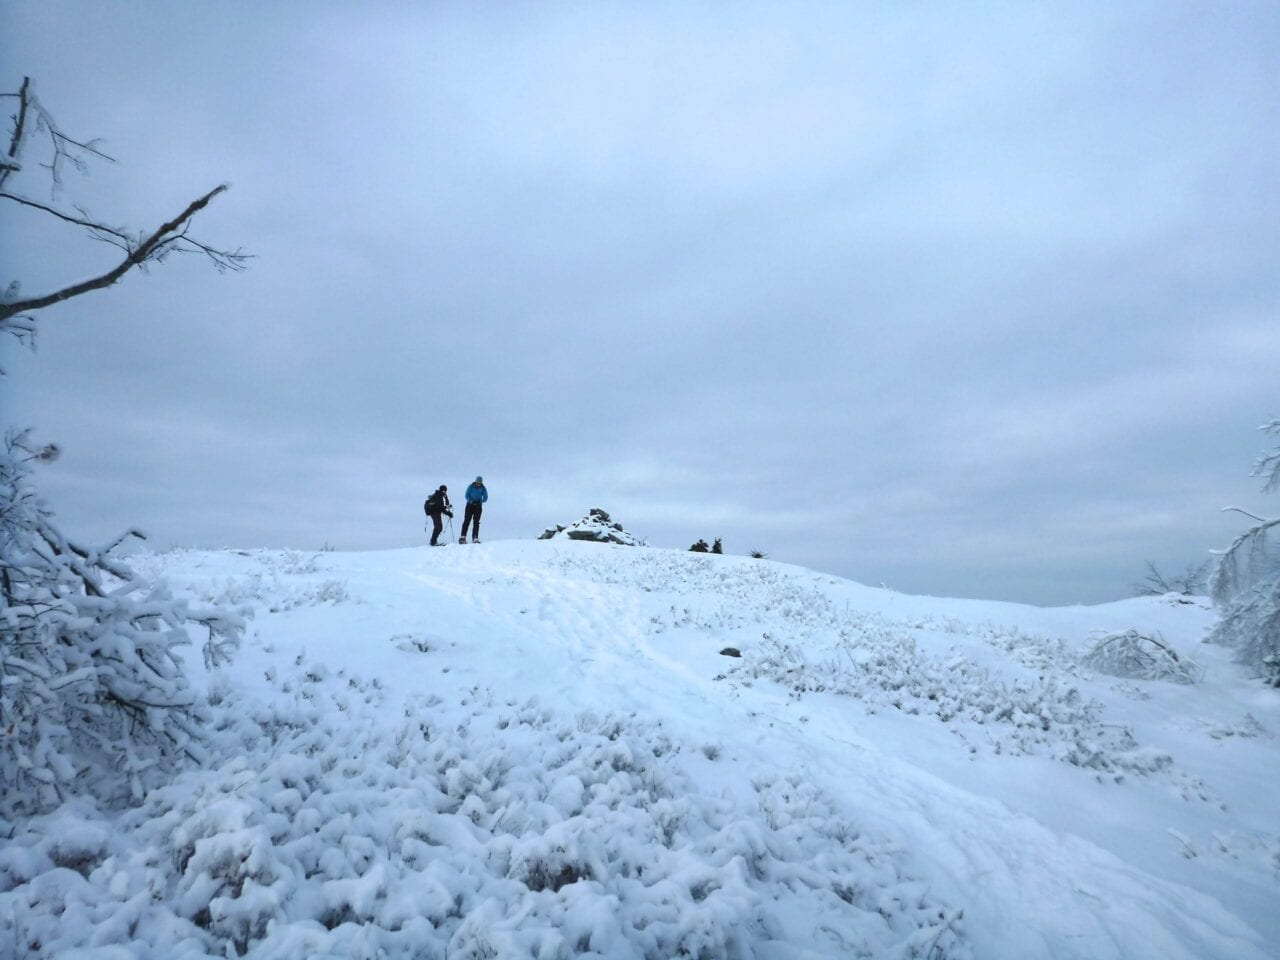 A few hikers stand on a snowy hill in a meadow.